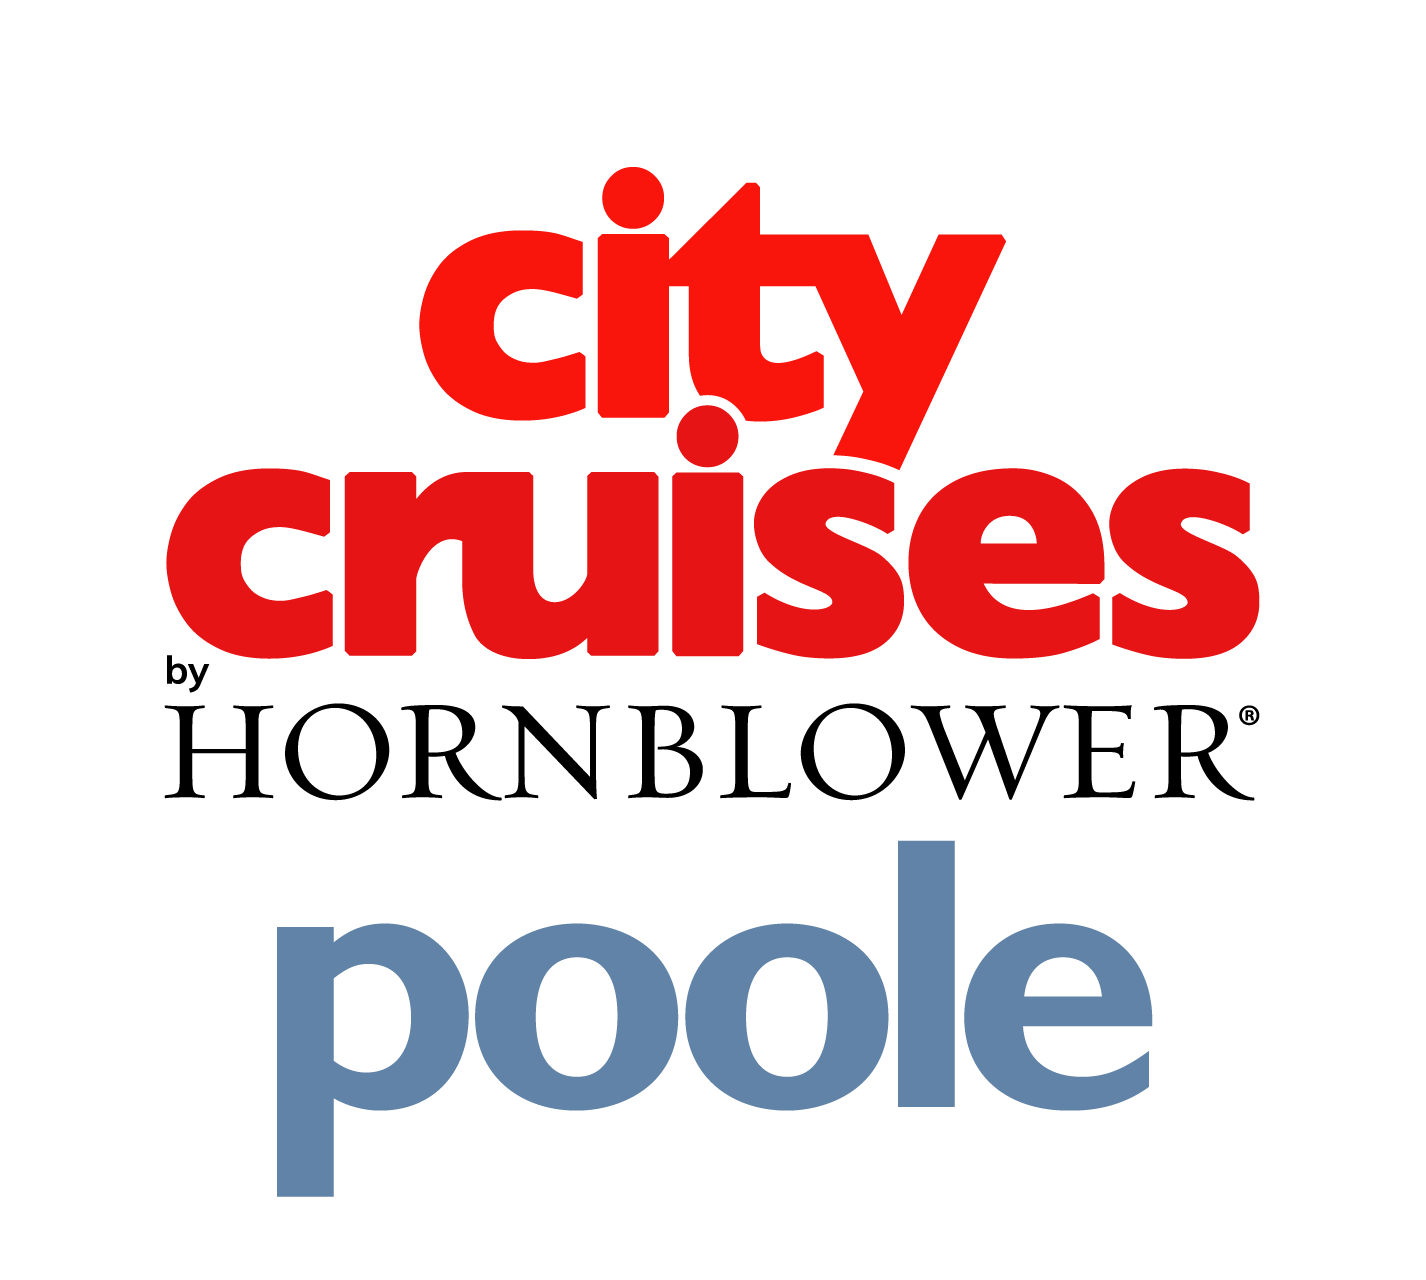 City Cruises Poole 2019